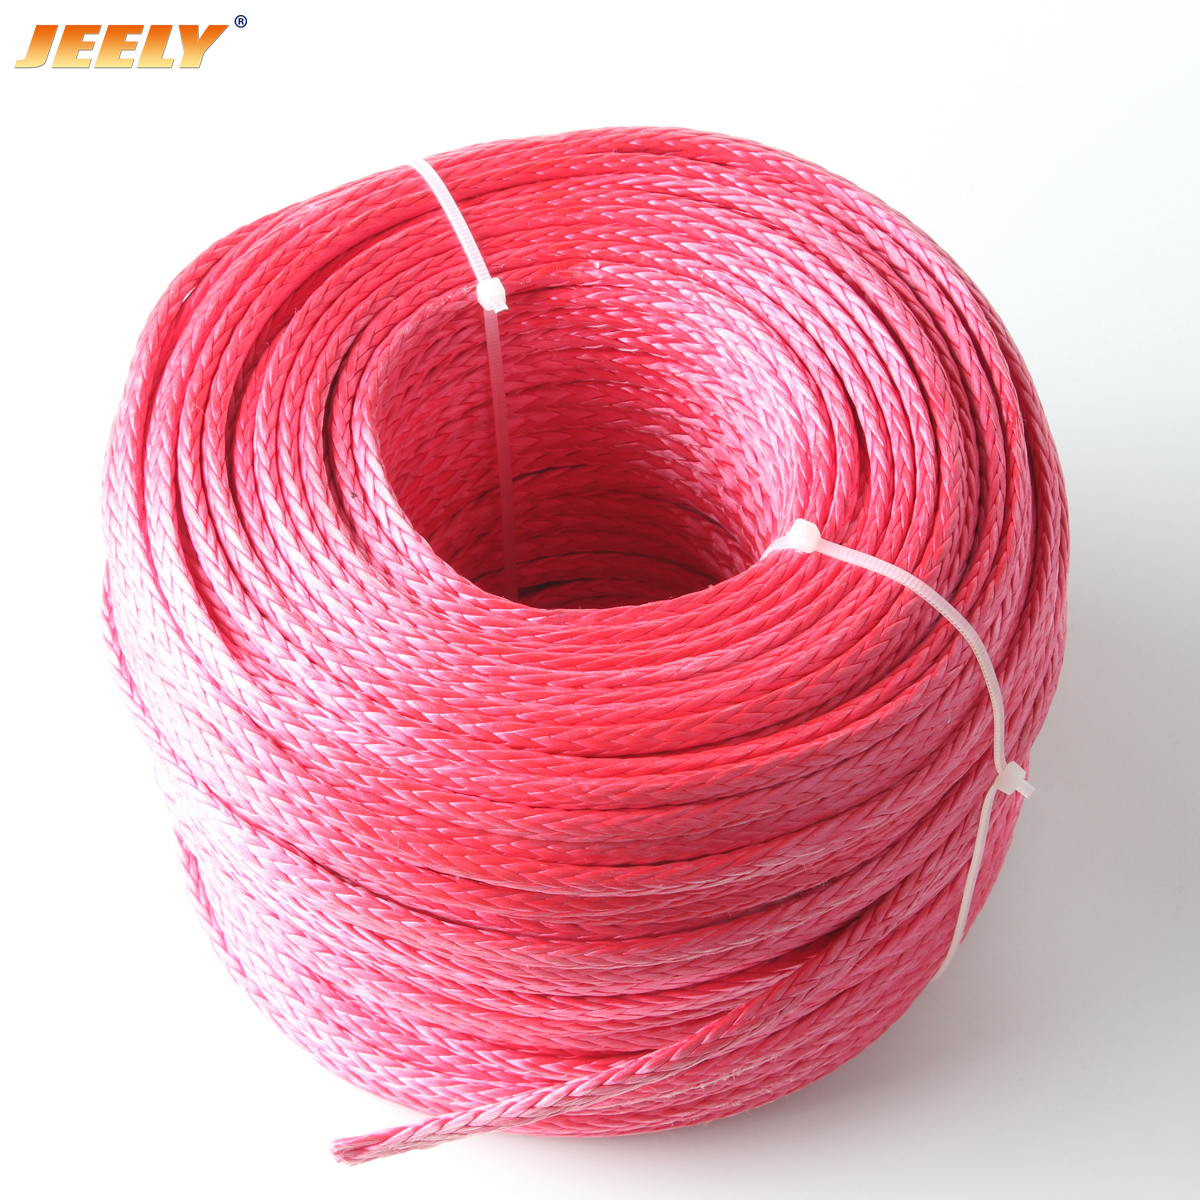 3mm UHMWPE Core with Polyester Sleeve Mooring Rope